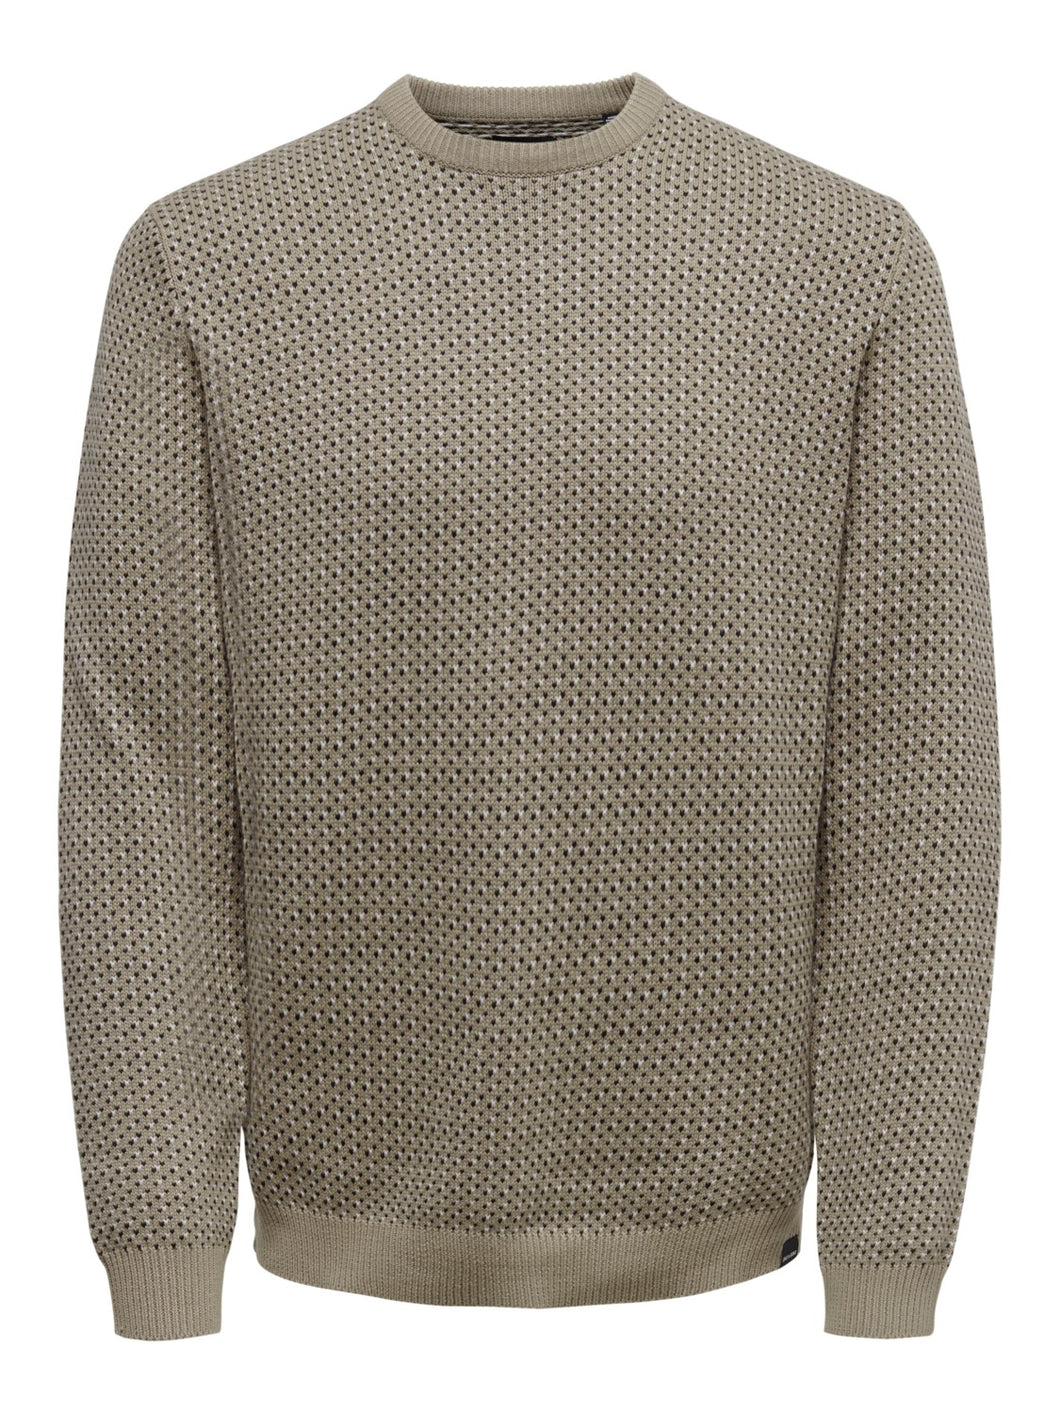 Only & Sons Shamson Jacquard Jumper Cream